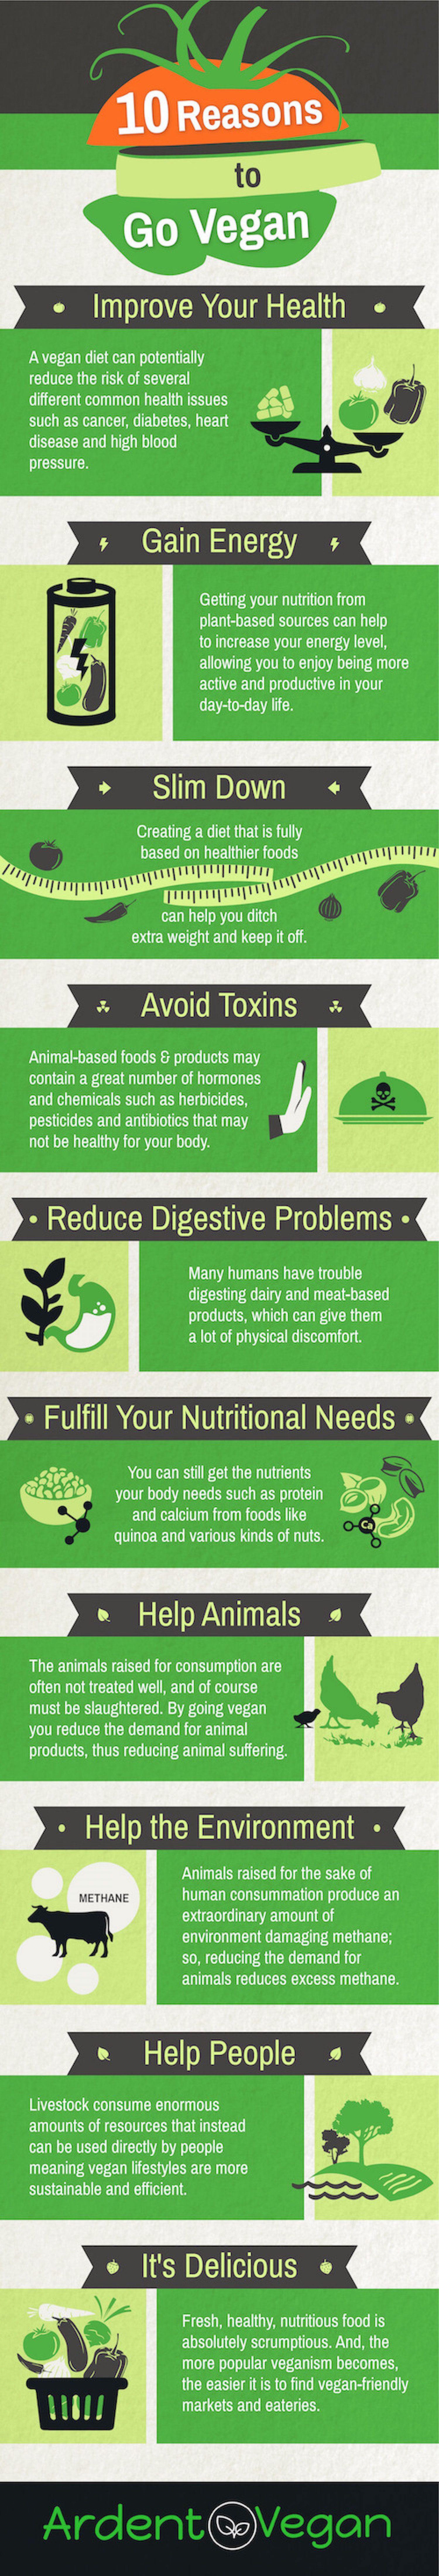 an overview of several reasons to become a vegeterian